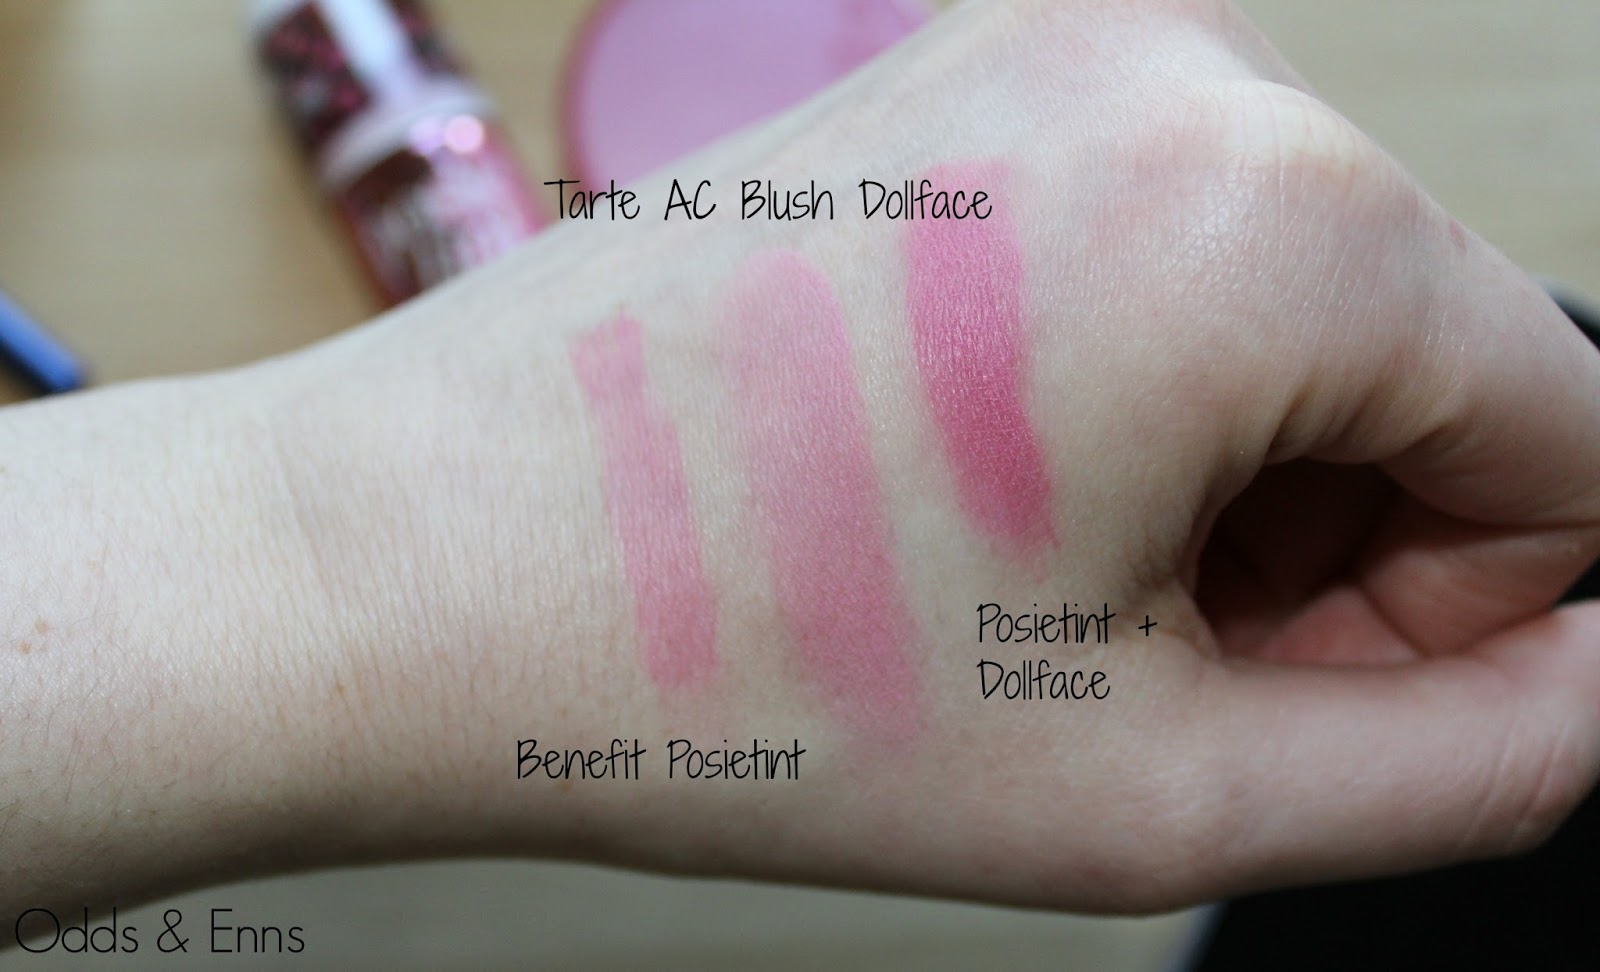 Benefit Posietint Review and Tarte Amazonian Clay Blush in Dollface Review